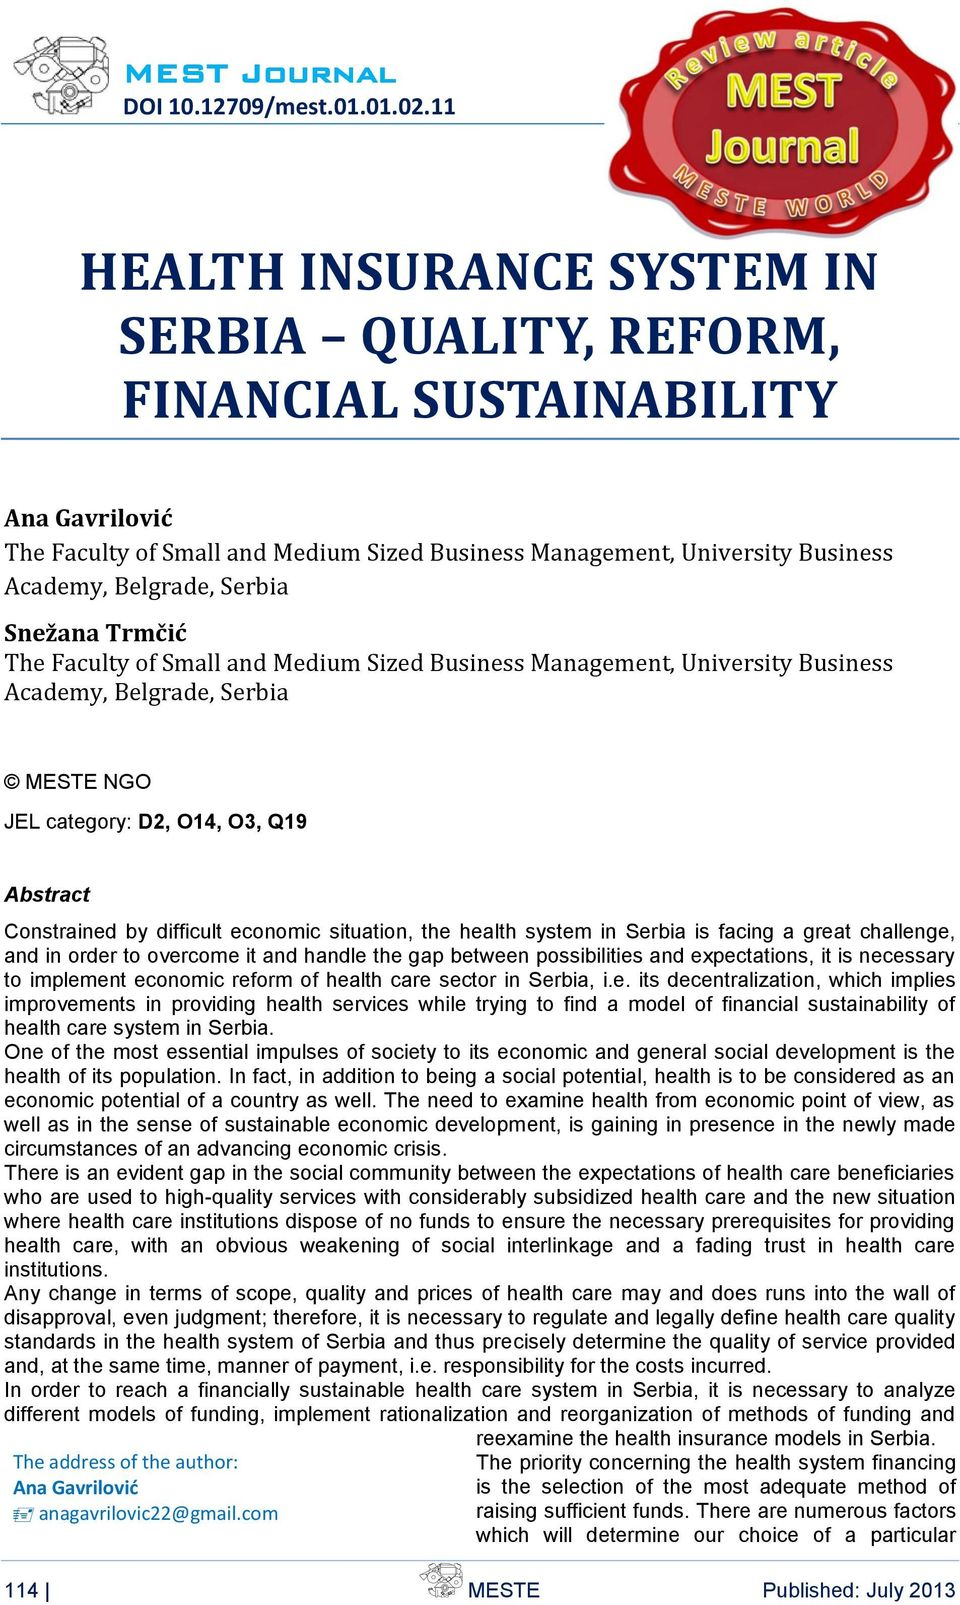 Snežana Trmčić The Faculty of Small and Medium Sized Business Management, University Business Academy, Belgrade, Serbia MESTE NGO JEL category: D2, O14, O3, Q19 Abstract Constrained by difficult